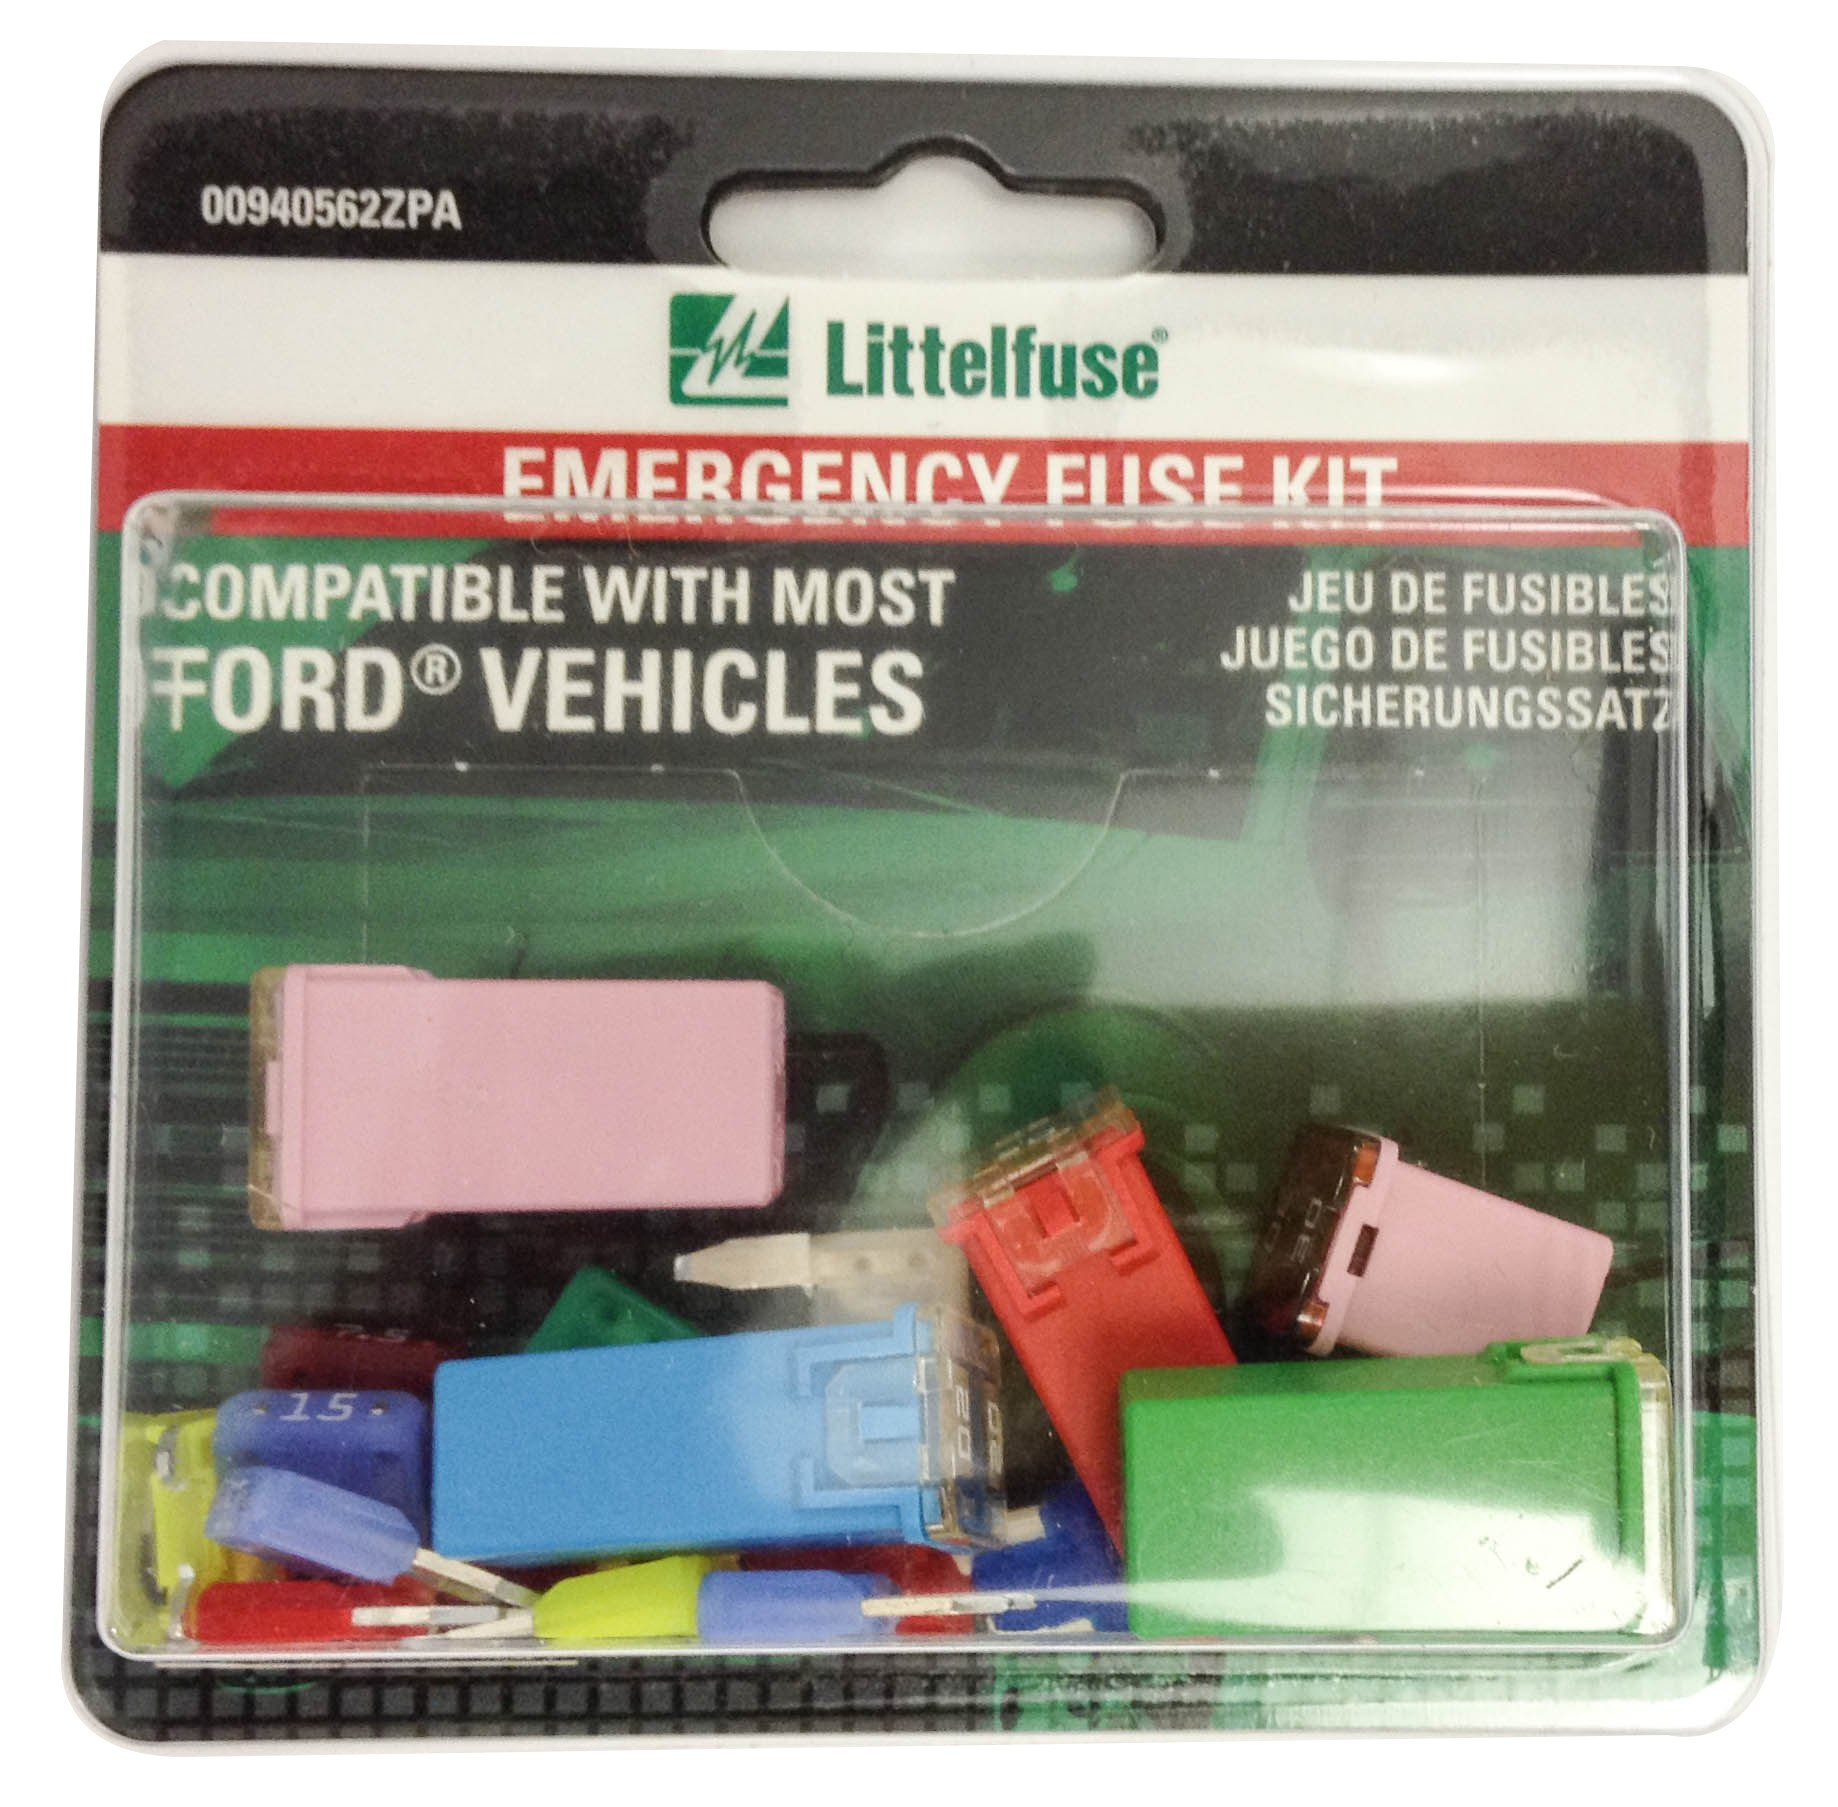 Littelfuse 00940562ZPA OEM Emergency Fuse Kit for Ford by Littelfuse (Image #1)